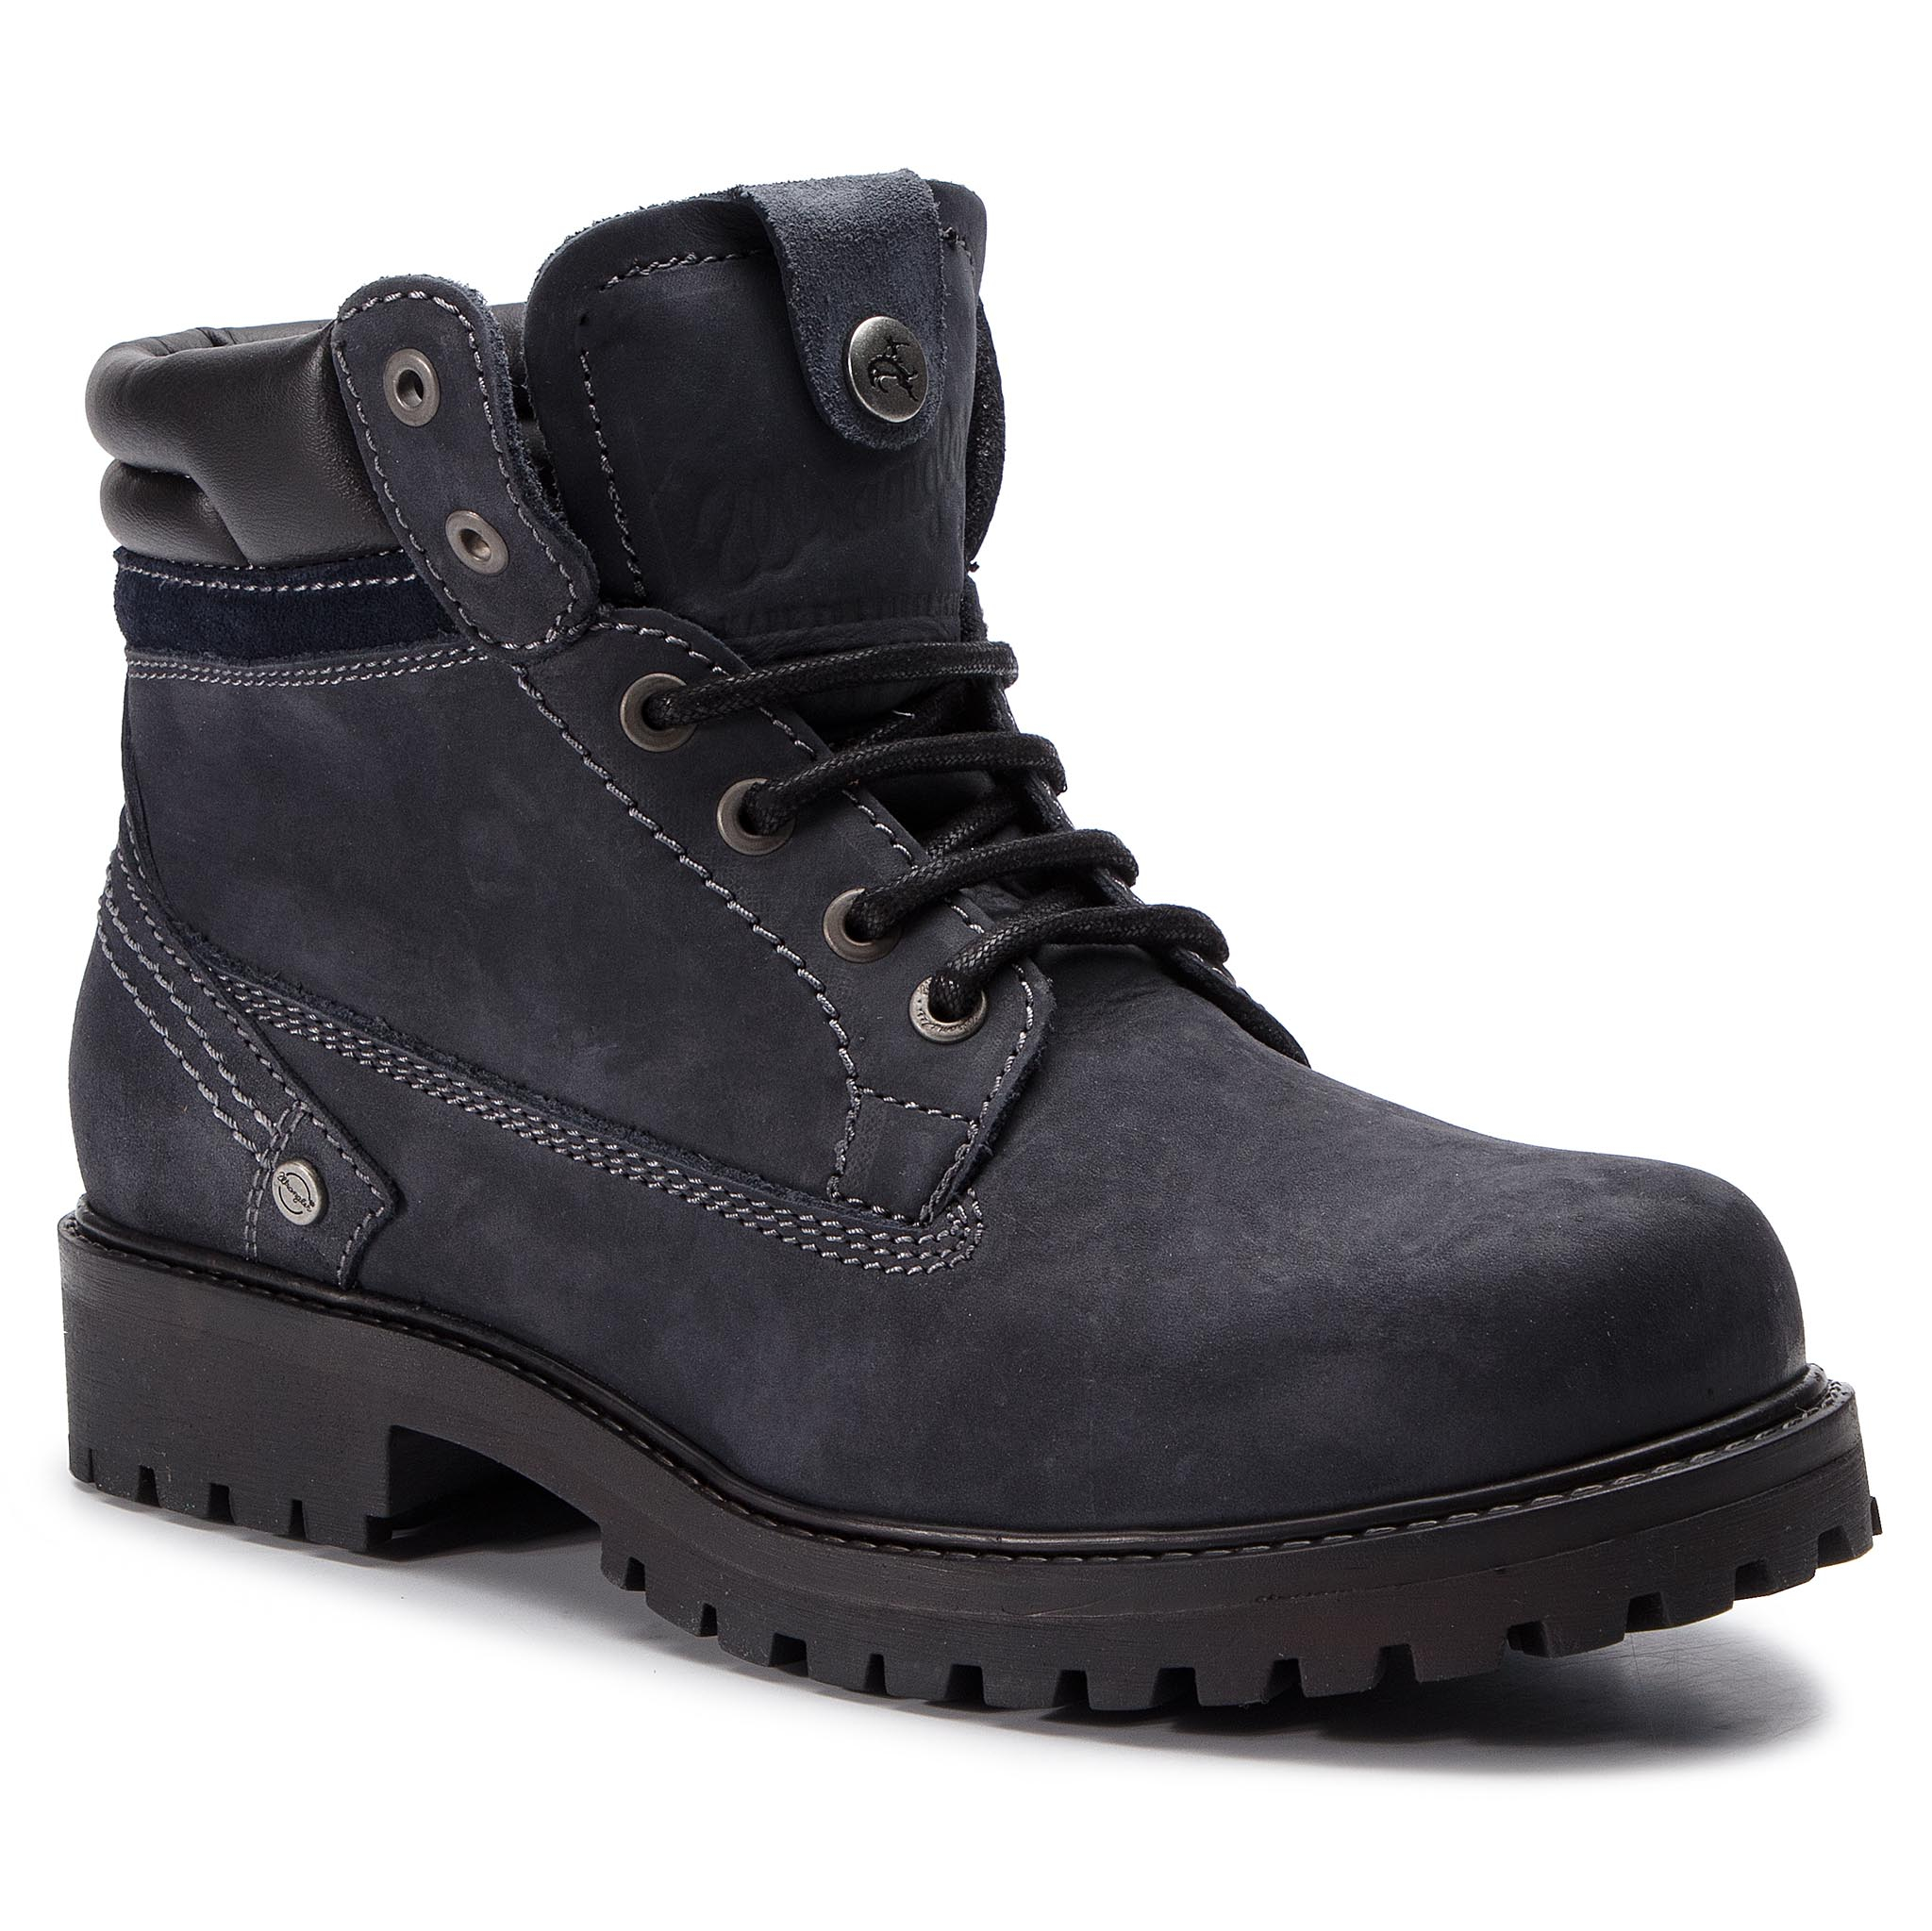 Trappers WRANGLER - Creek WM172000 Navy 16